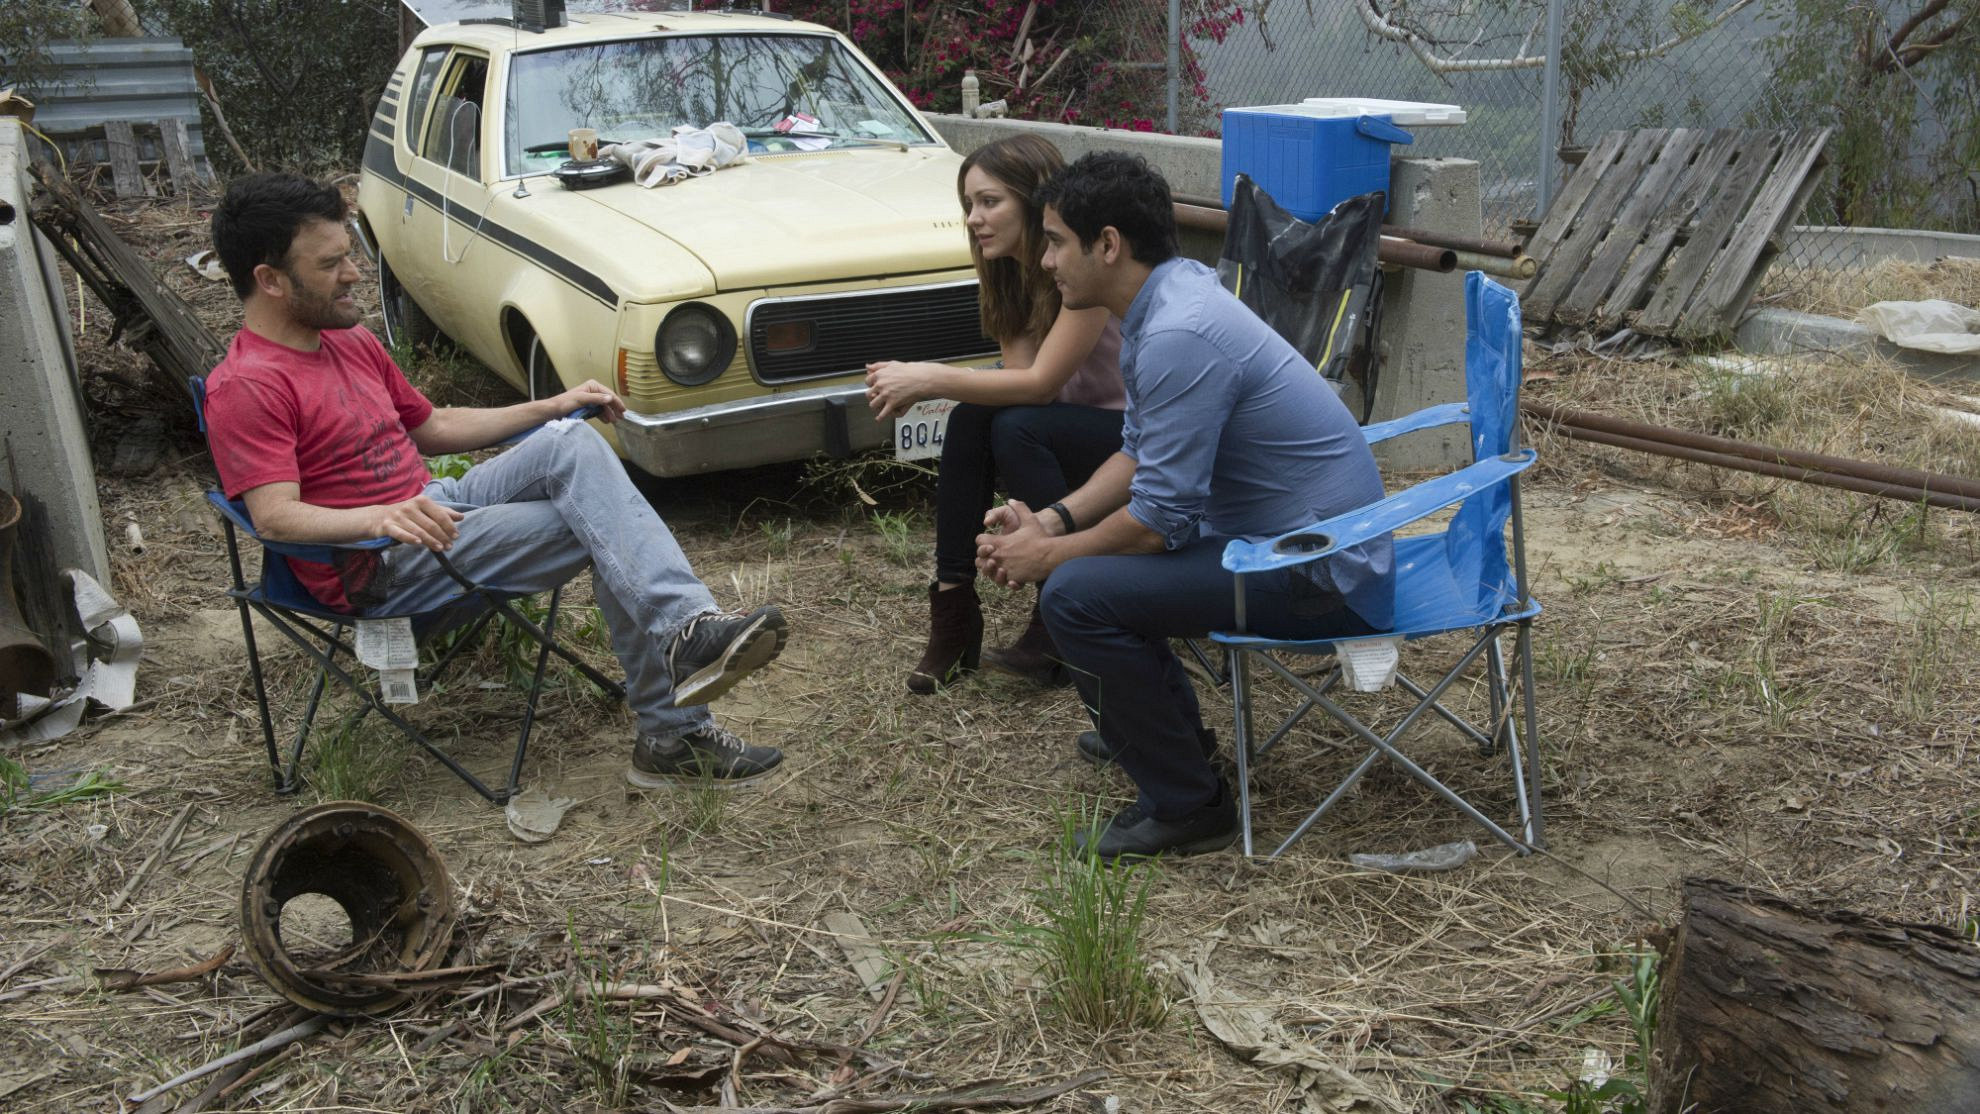 Kevin Weisman as Ray Spiewack, Katharine McPhee as Paige Dineen, and Elyes Gabel as Walter O'Brien